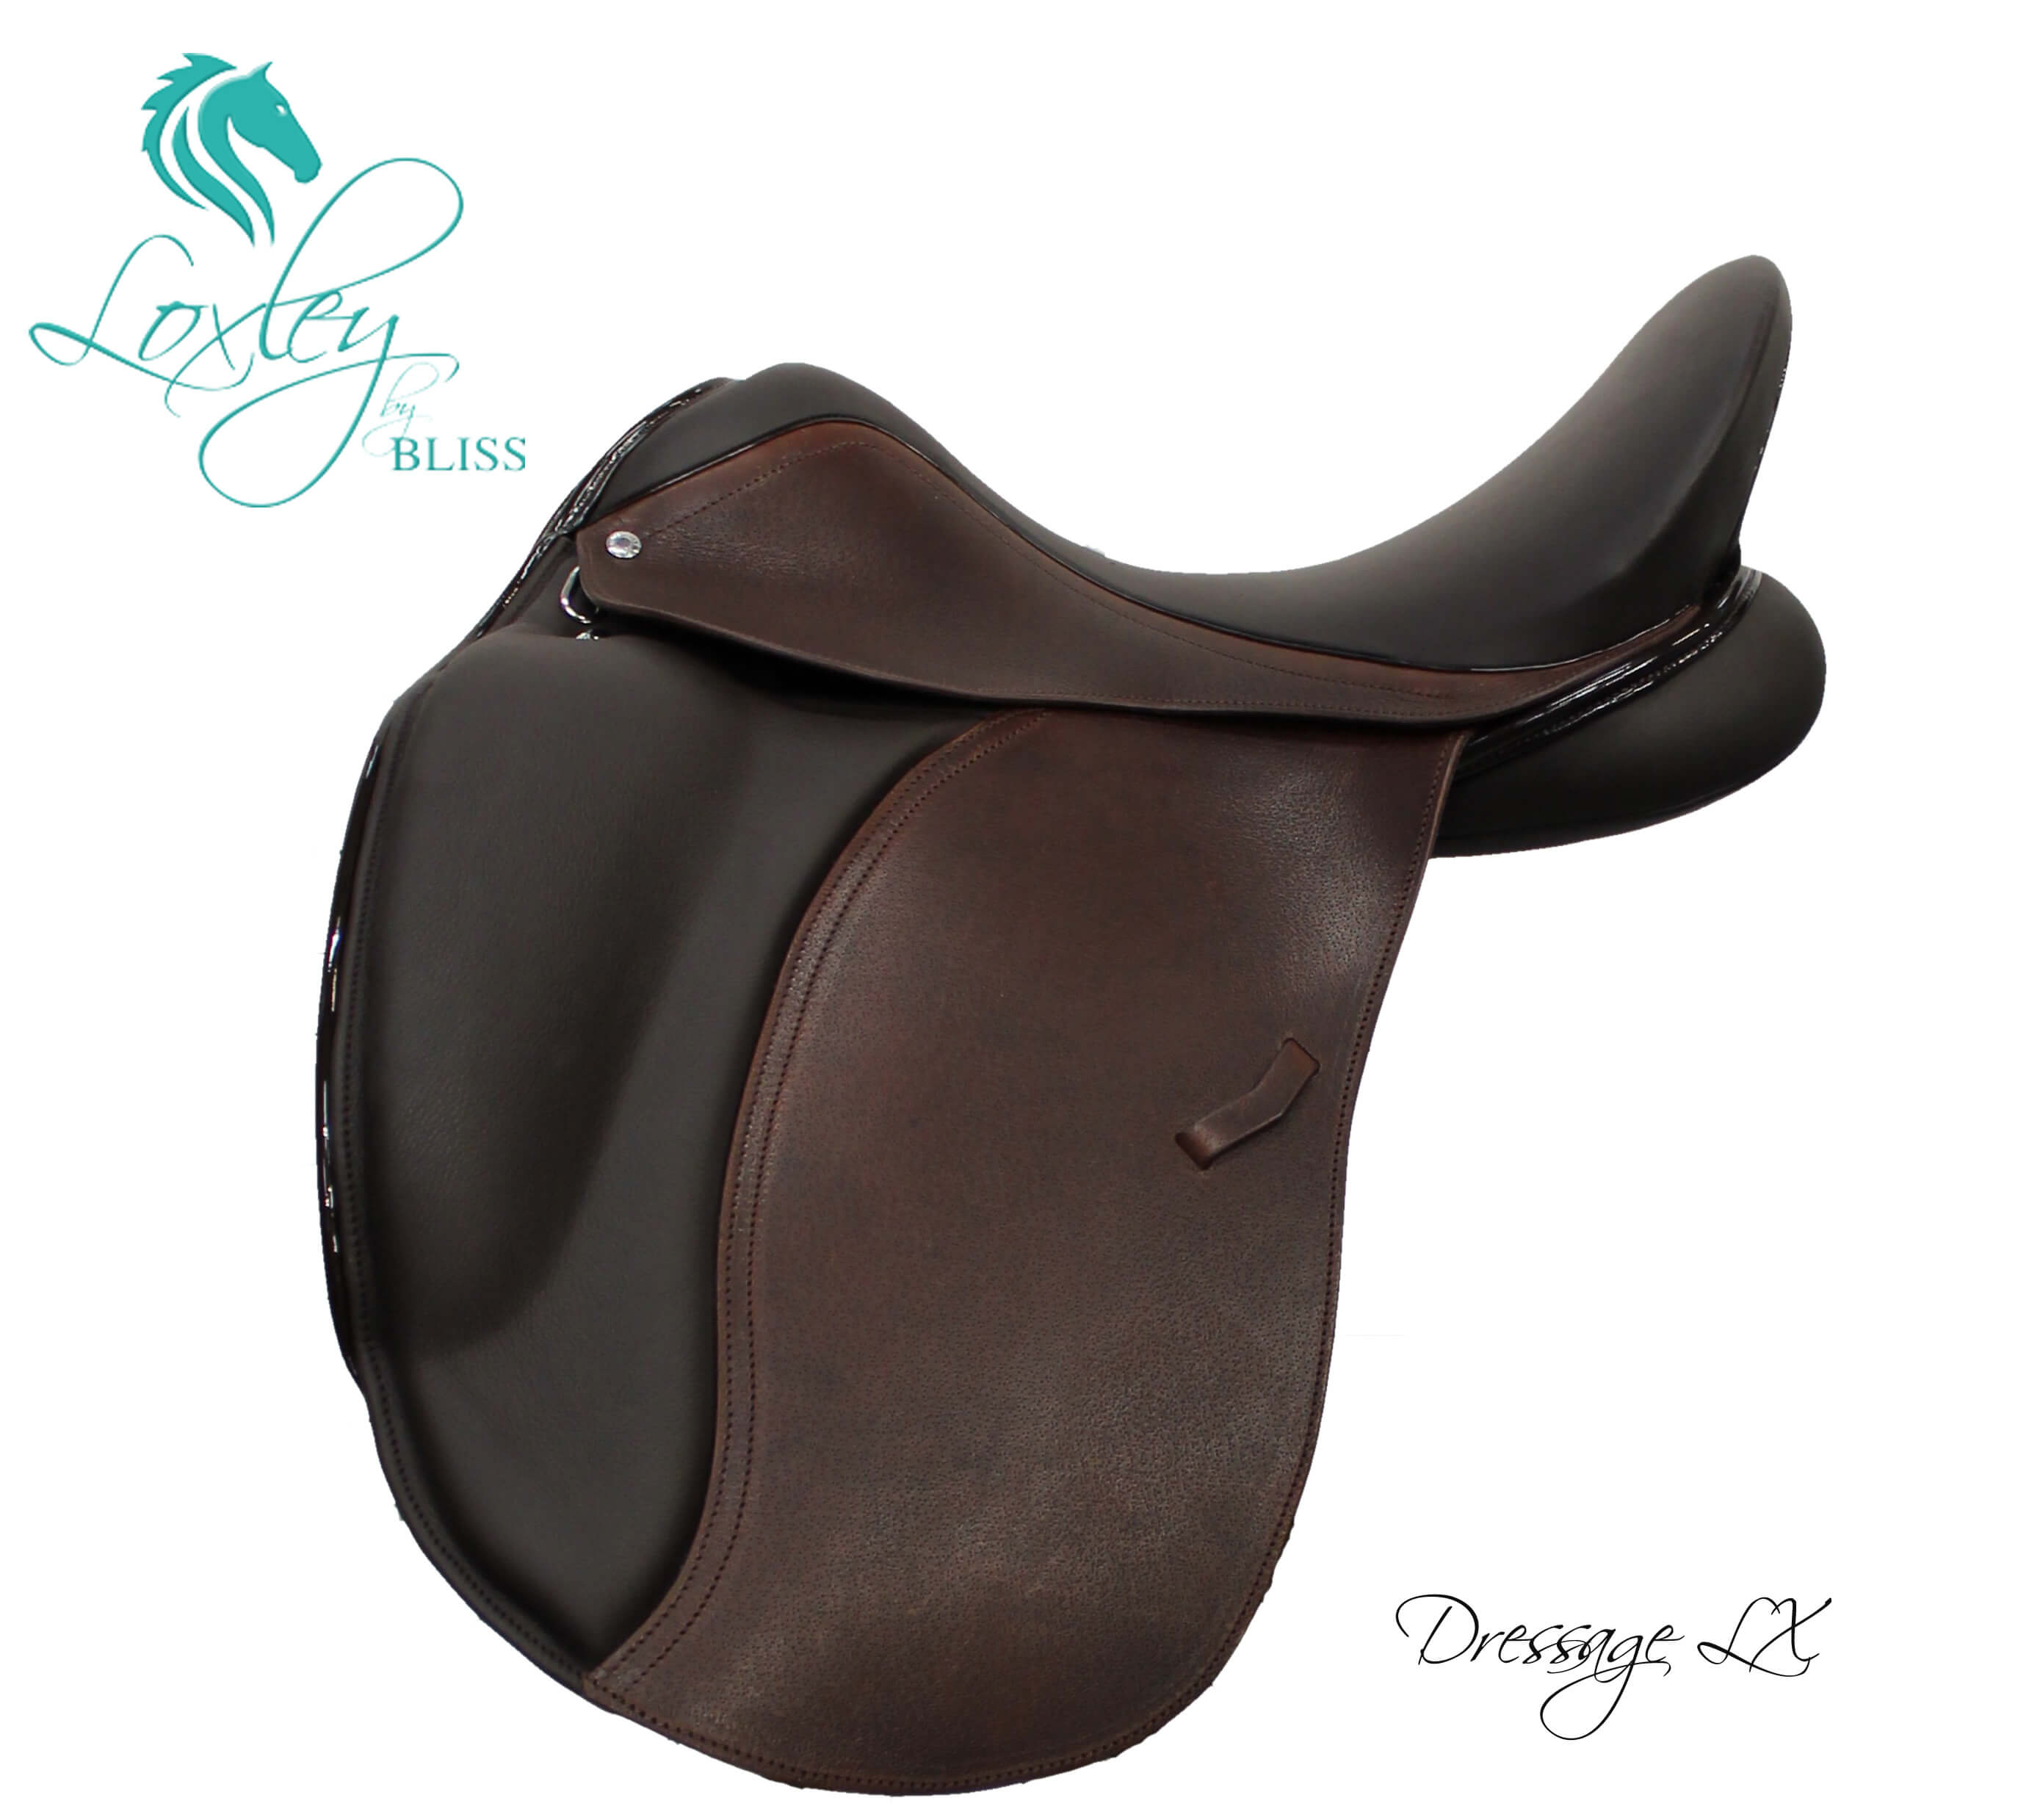 1AA Product page 1 - 18053 - Loxley Dressage LX cocoa two tone patent